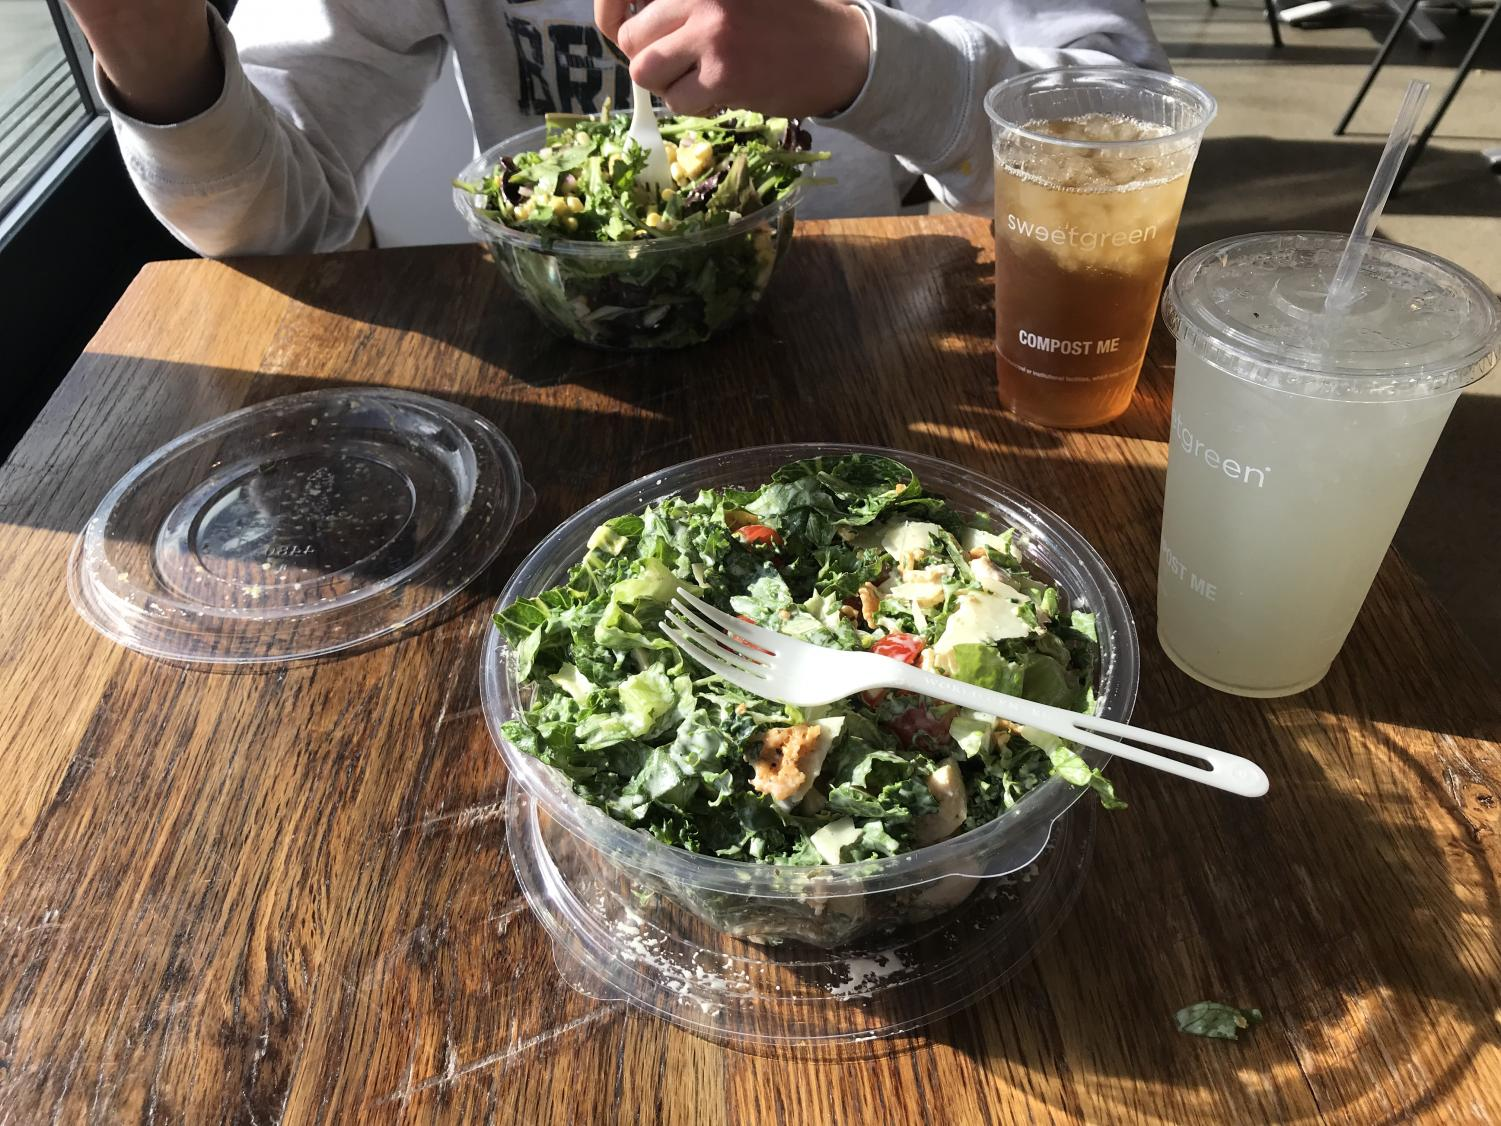 Kale Caesar Salad from Sweetgreen.